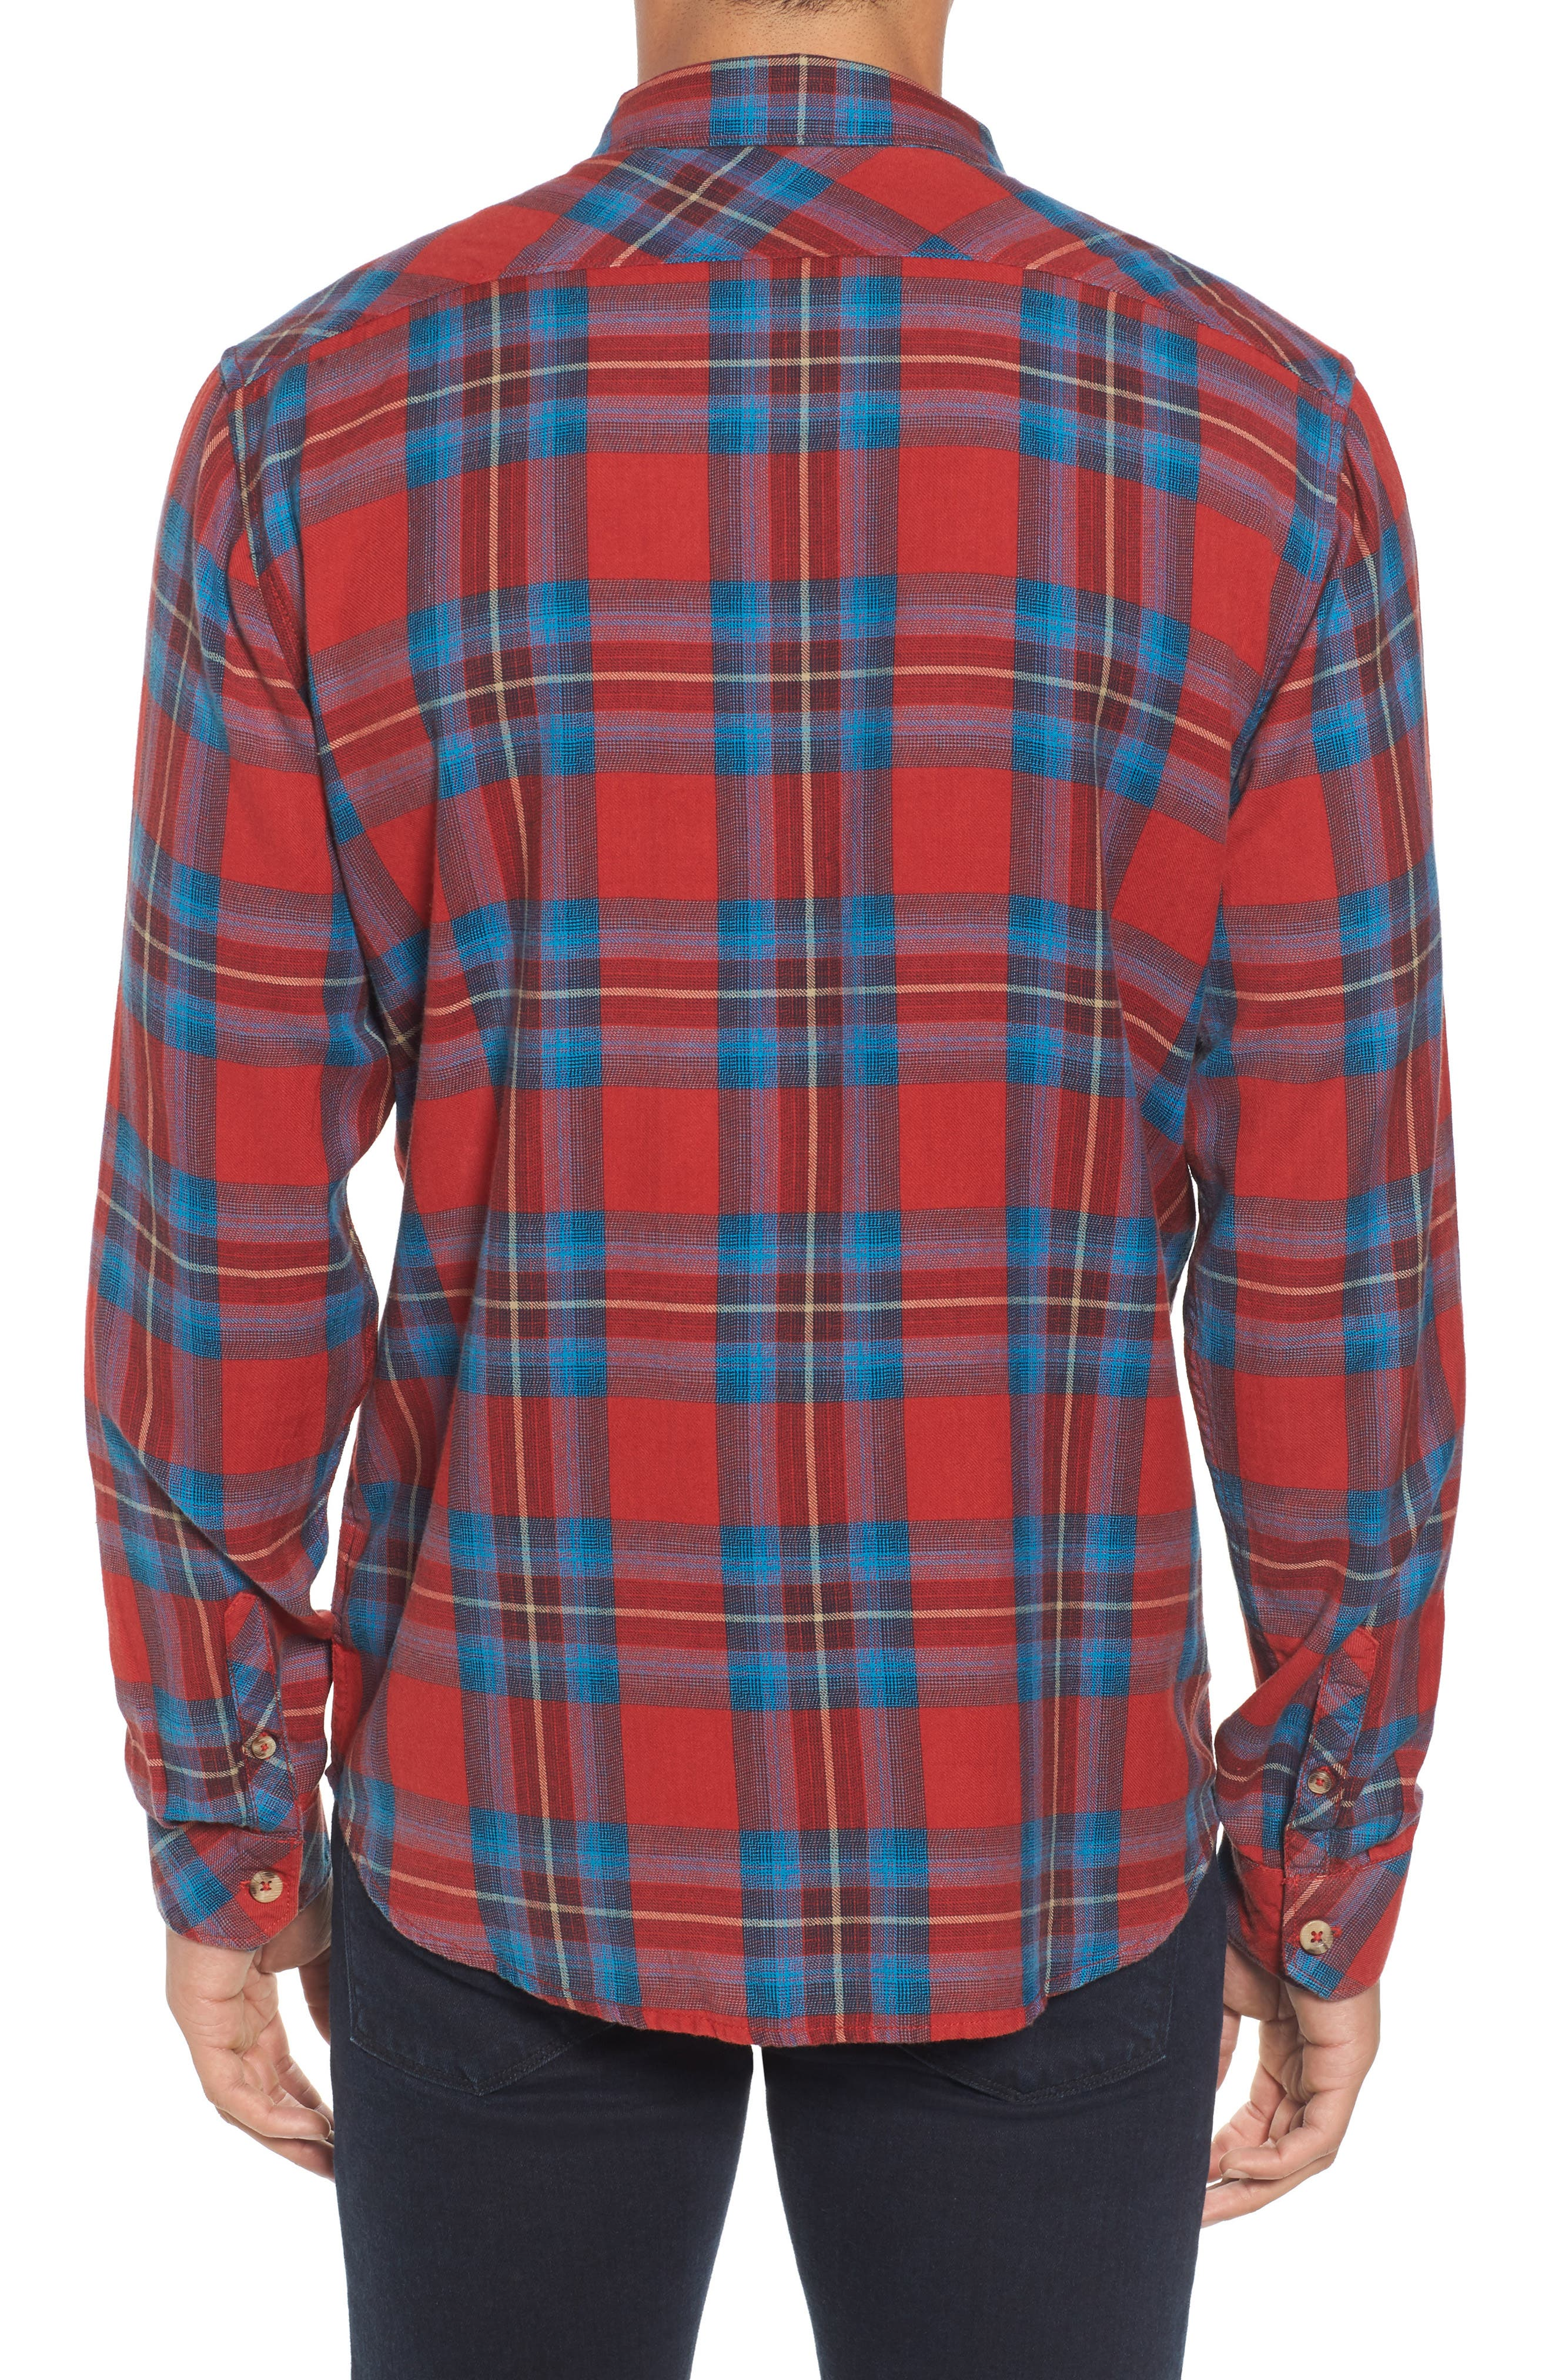 Freemont Flannel Shirt,                             Alternate thumbnail 2, color,                             Red